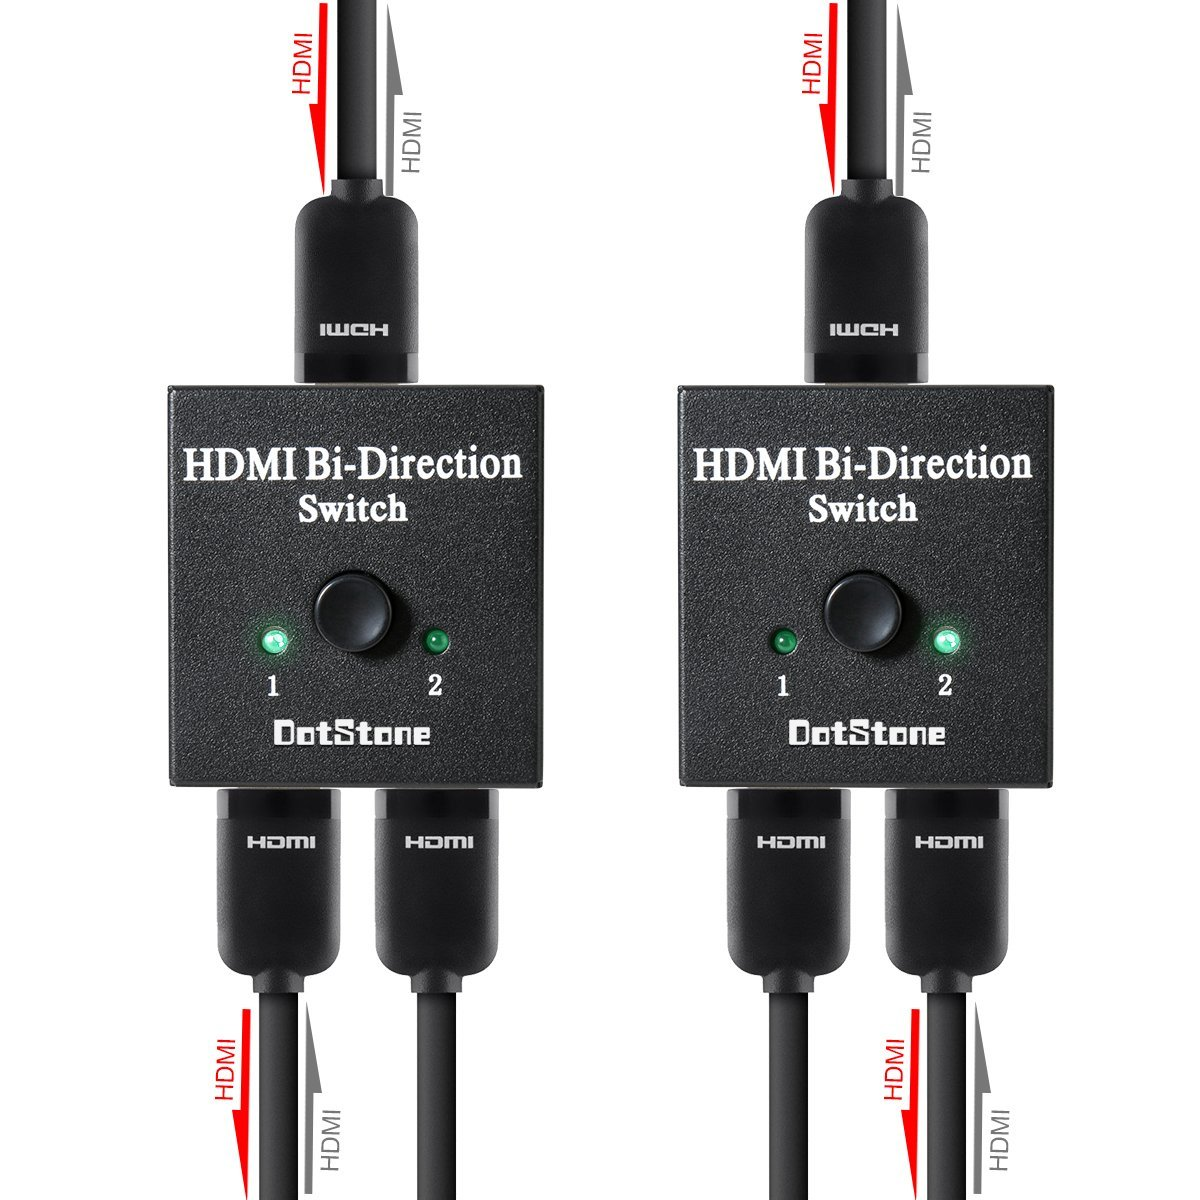 Haulbooty Product Reviews: Real Shopping Help: DotStone HDMI